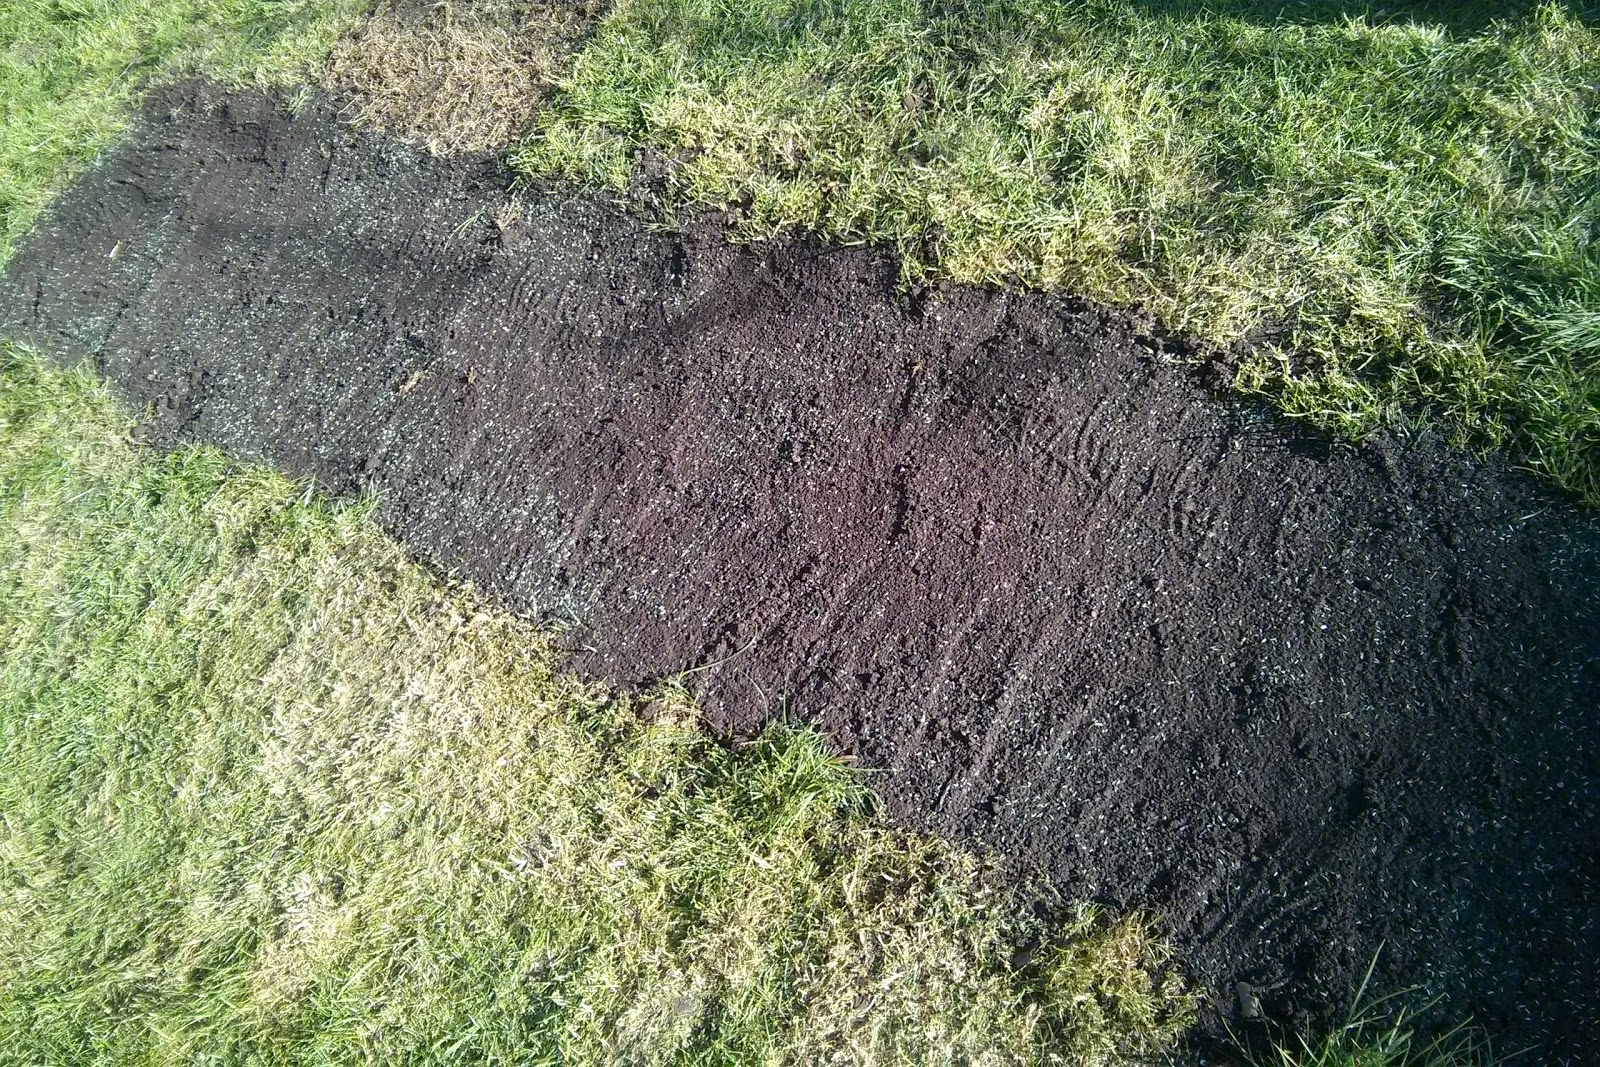 Mud Strip in Lawn